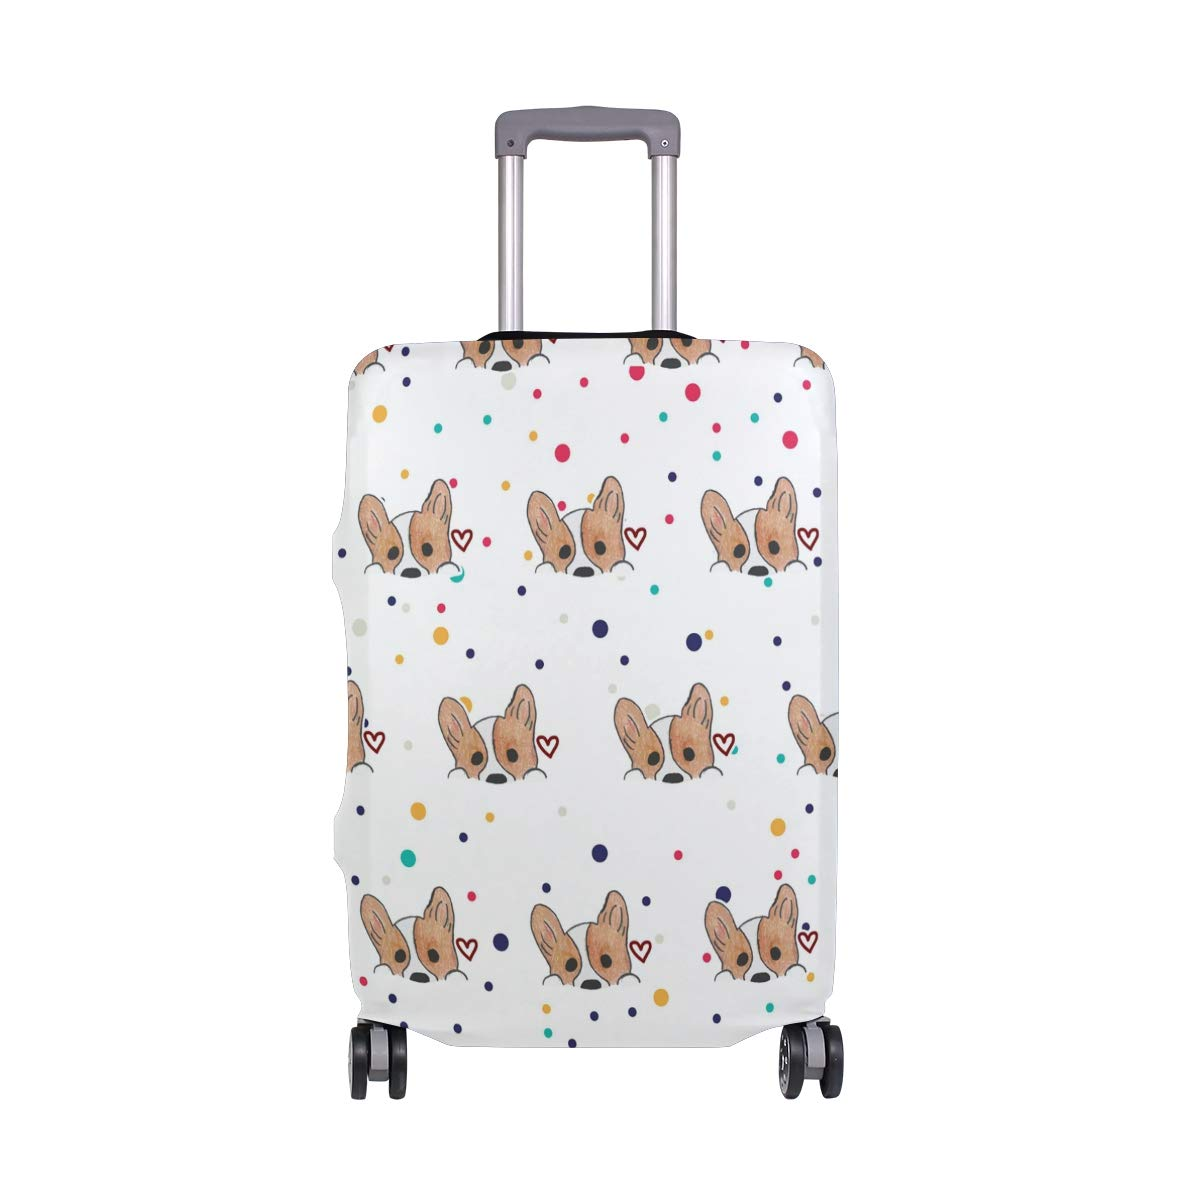 My Love Travel Luggage Cover - Suitcase Protector HLive Spandex Dust Proof Covers with Zipper, Fits 18-32 inch